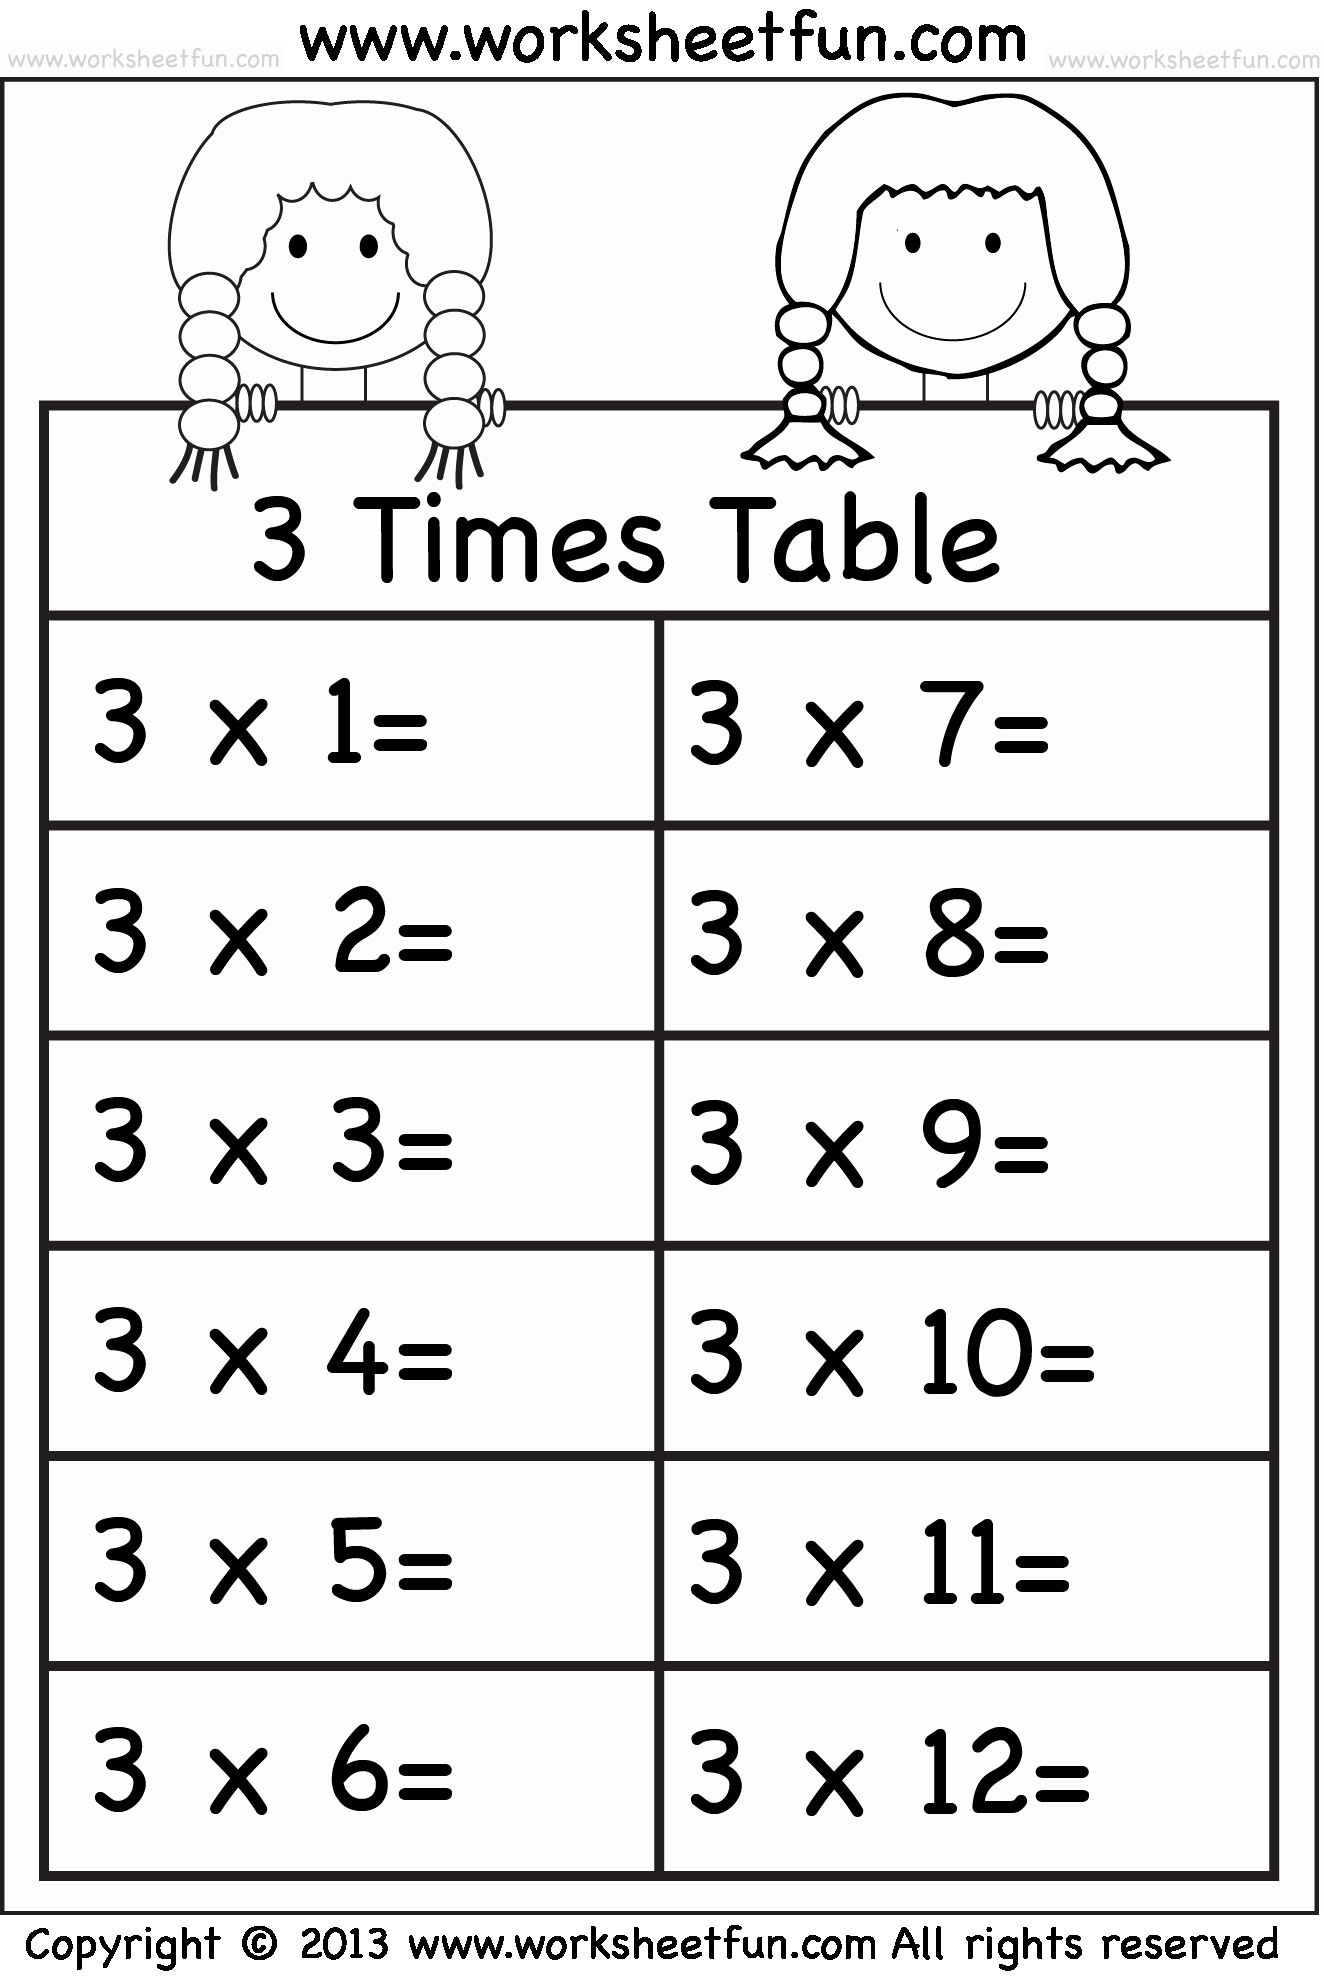 3 Times Table Worksheet New Times Tables Worksheets – 2 3 4 5 6 7 8 9 10 11